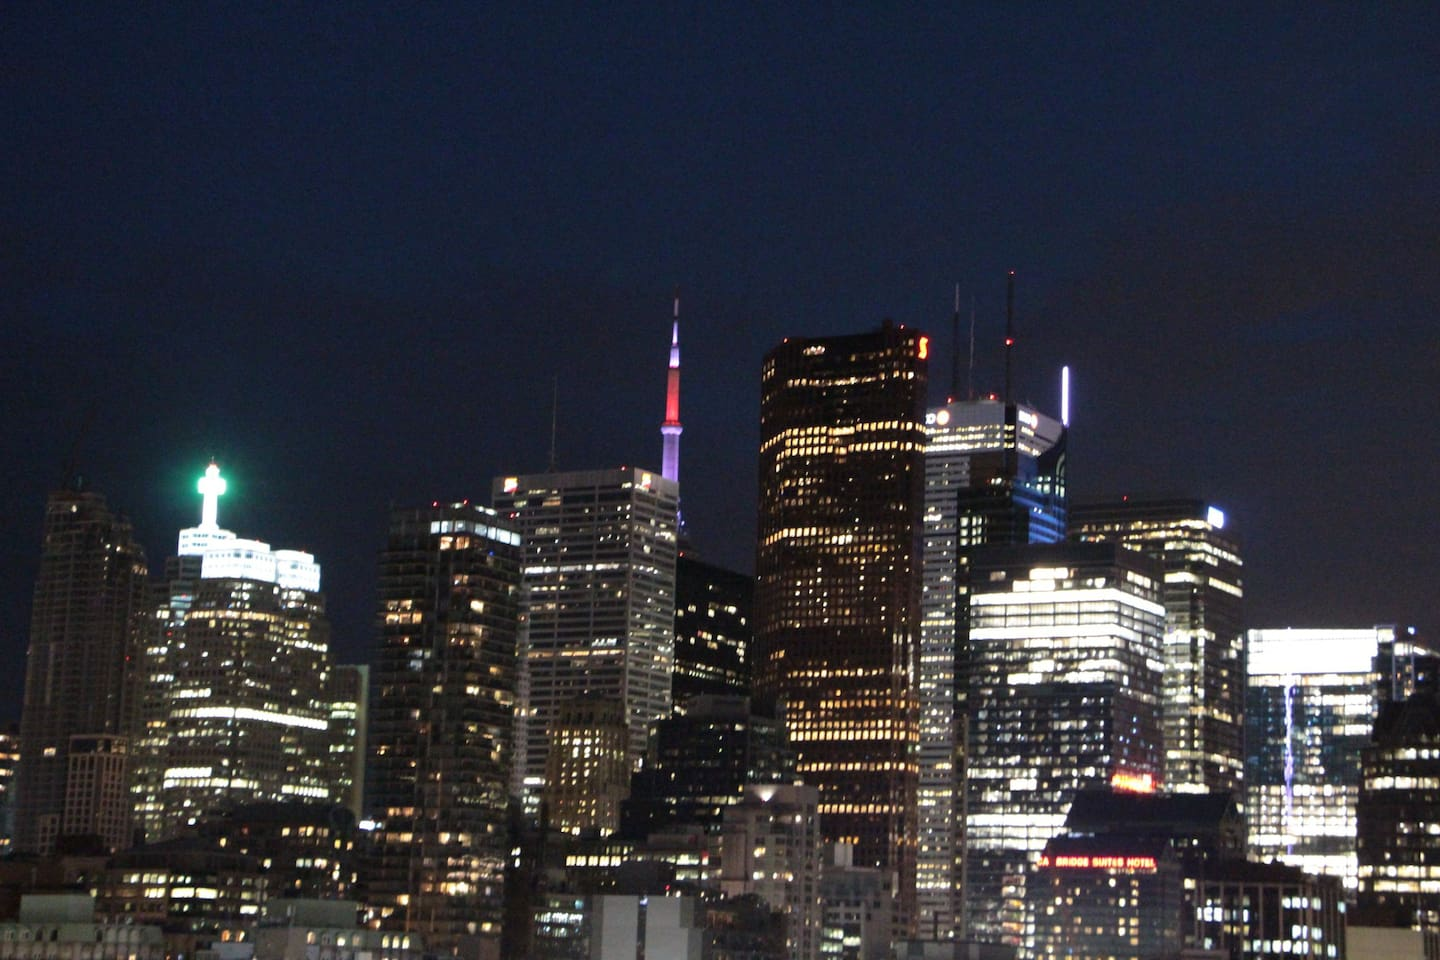 Night view of Downtown from Bedroom window